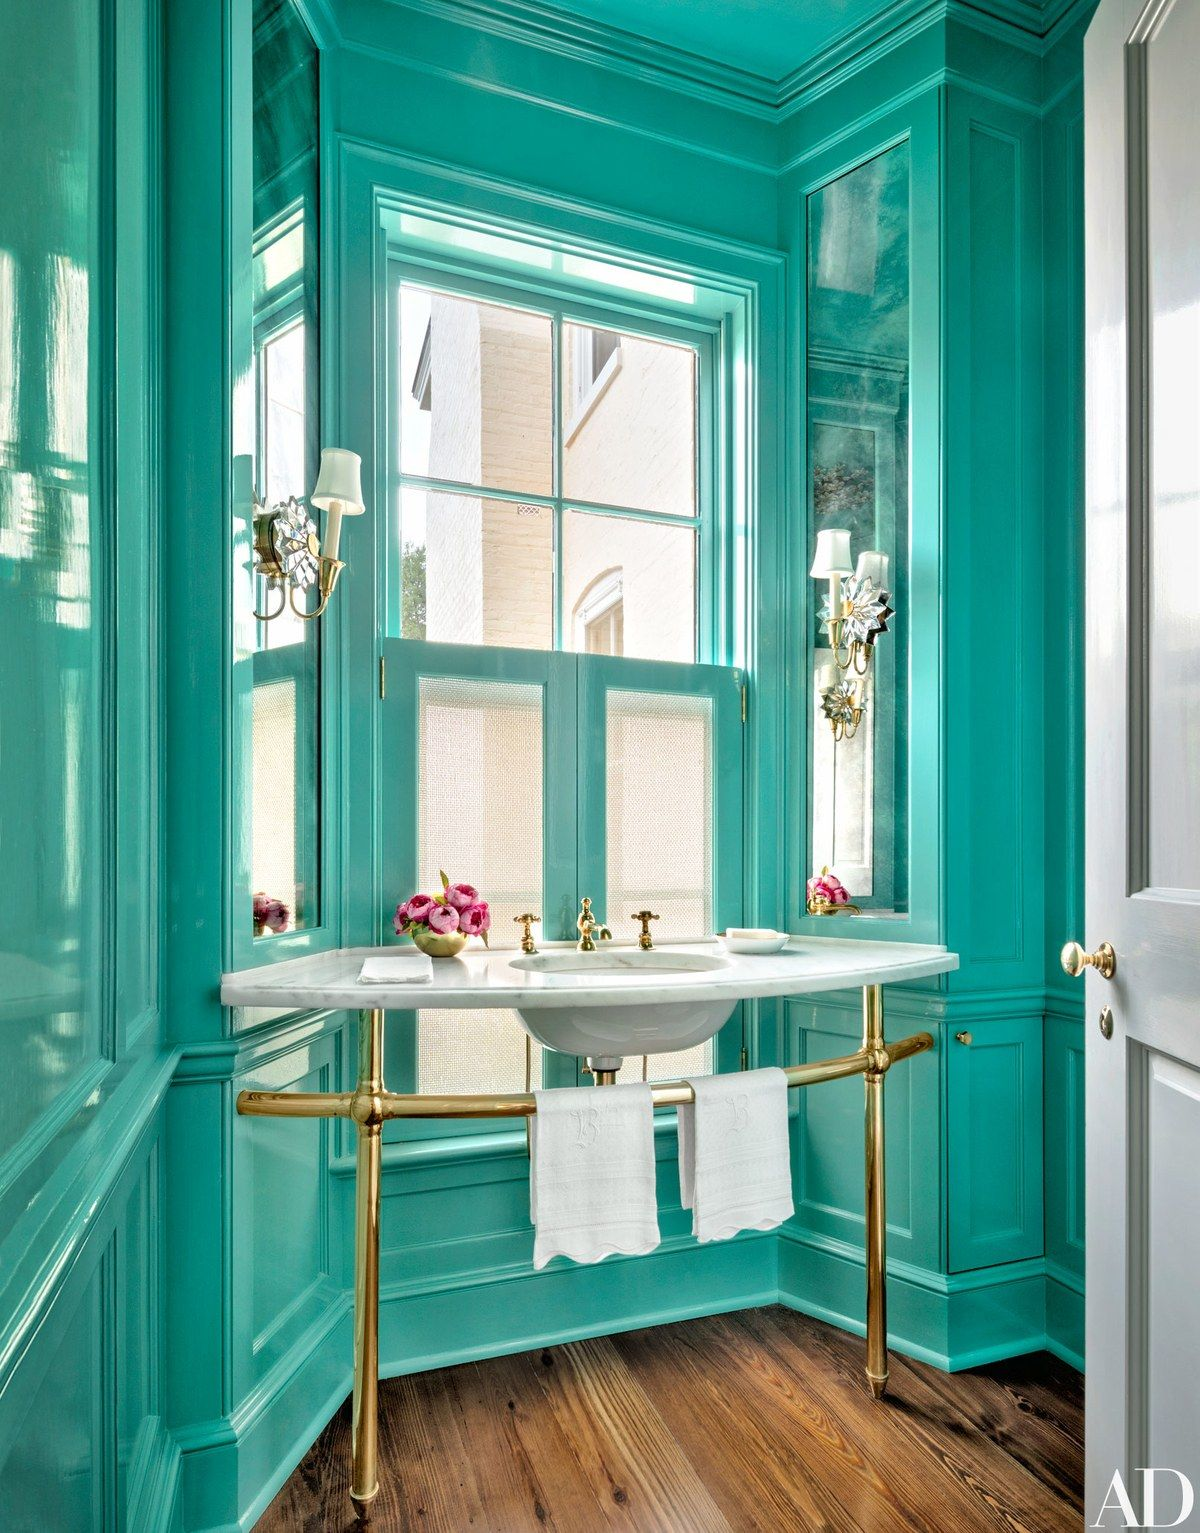 The powder room's sconces are by Chameleon Fine Lighting, and the washstand has brass sink fittings by Waterworks; the walls and ceiling are painted in a high-gloss Sherwin-Williams turquoise.